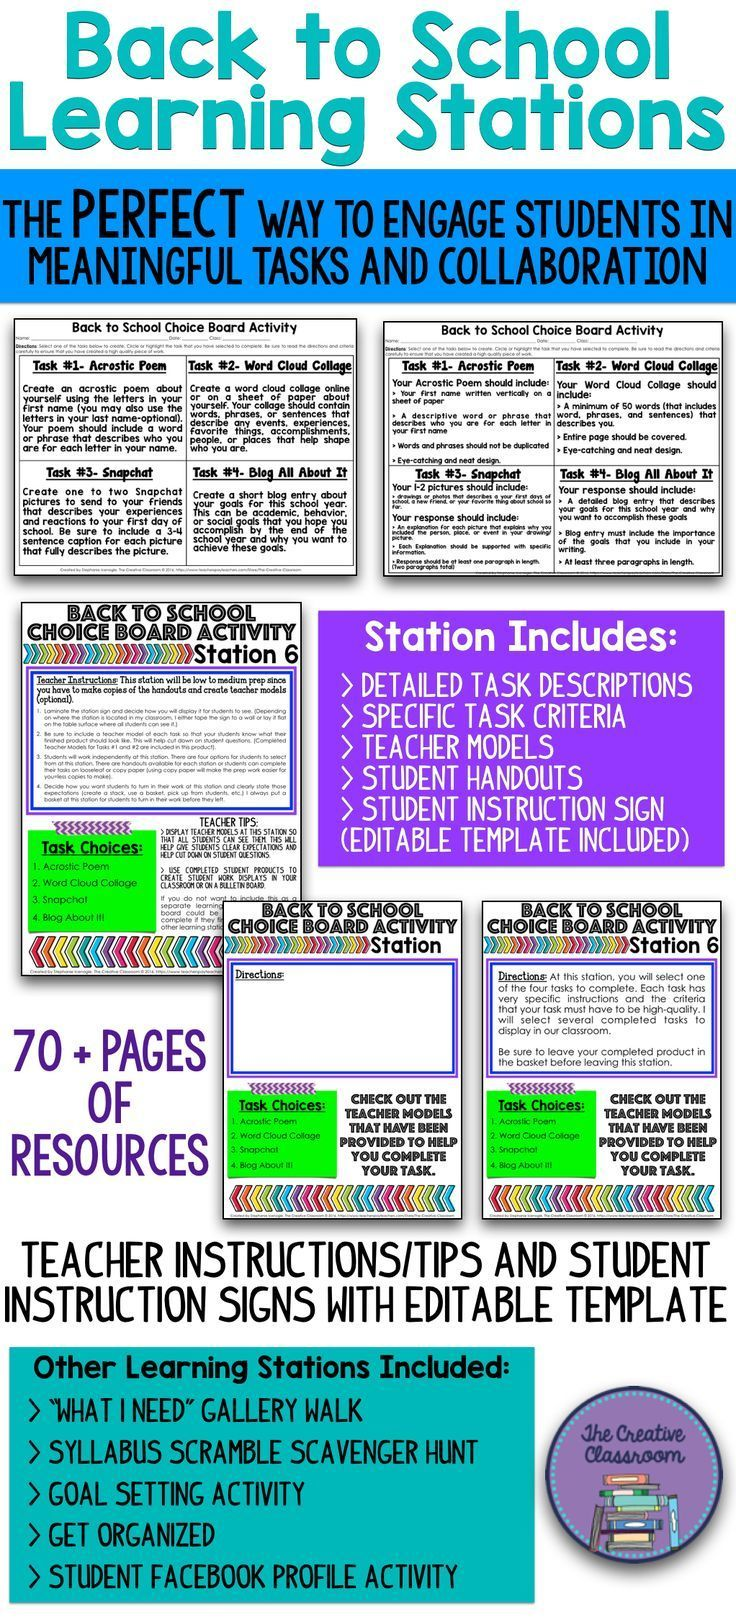 Are you looking for the perfect Back to School activity that will engage your students in meaningful tasks and collaboration on the FIRST day of school? The Back to School Learning Stations product, which contains over 70 pages of resources, is just what